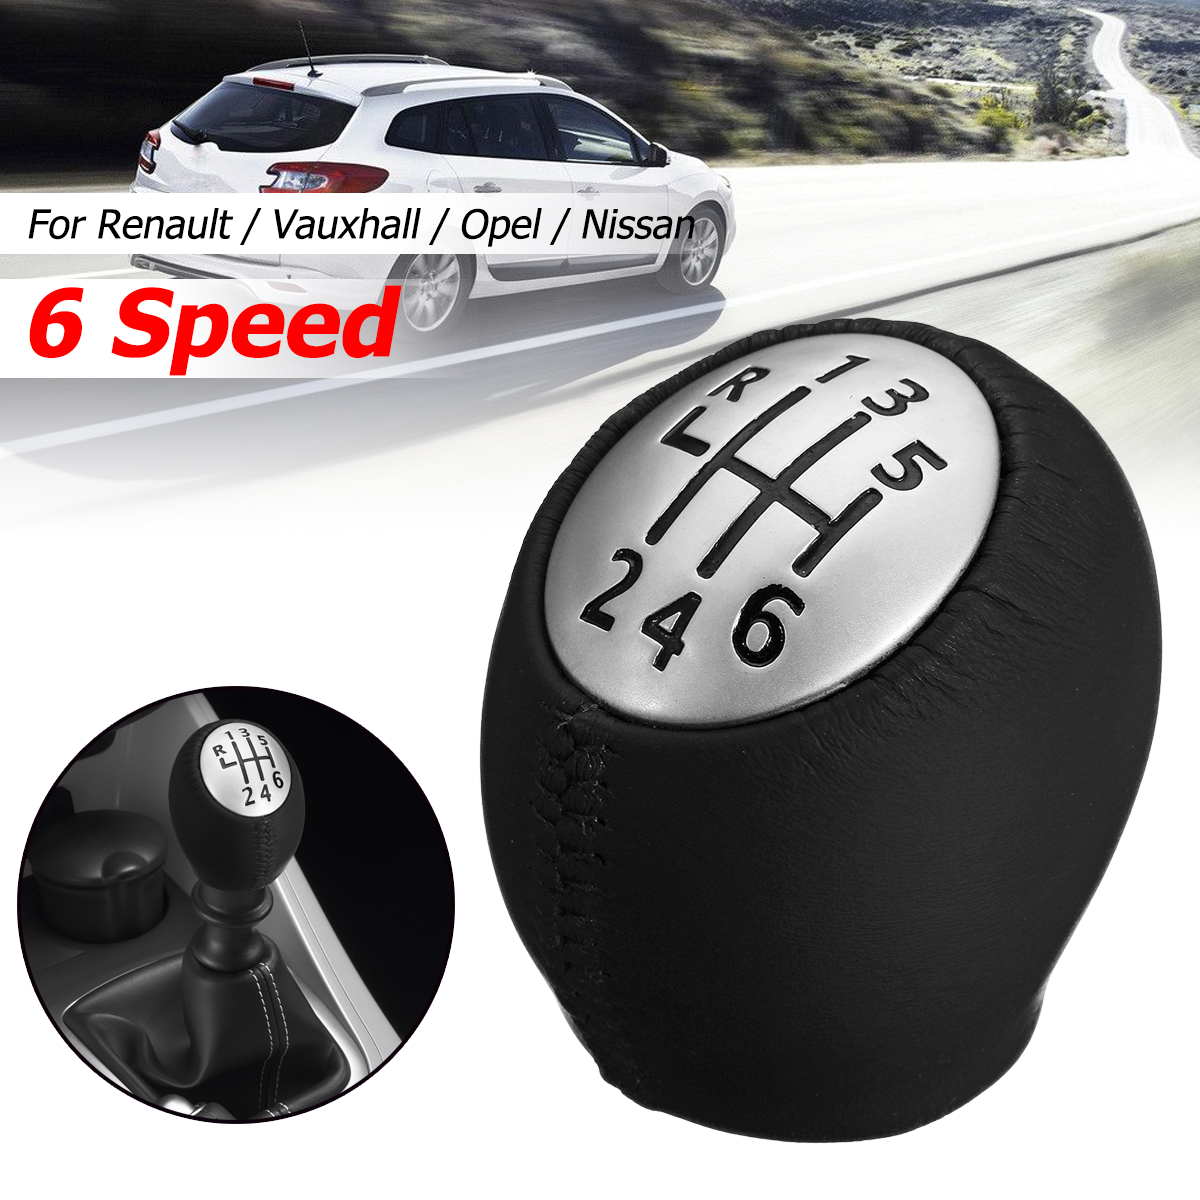 6 Speed Gear Shift Knob Leather Handle Ball For Renault Megane MK3 Clio Laguna for Vauxhall Opel for Nissan Interstar|Gear Shift Knob| |  - title=